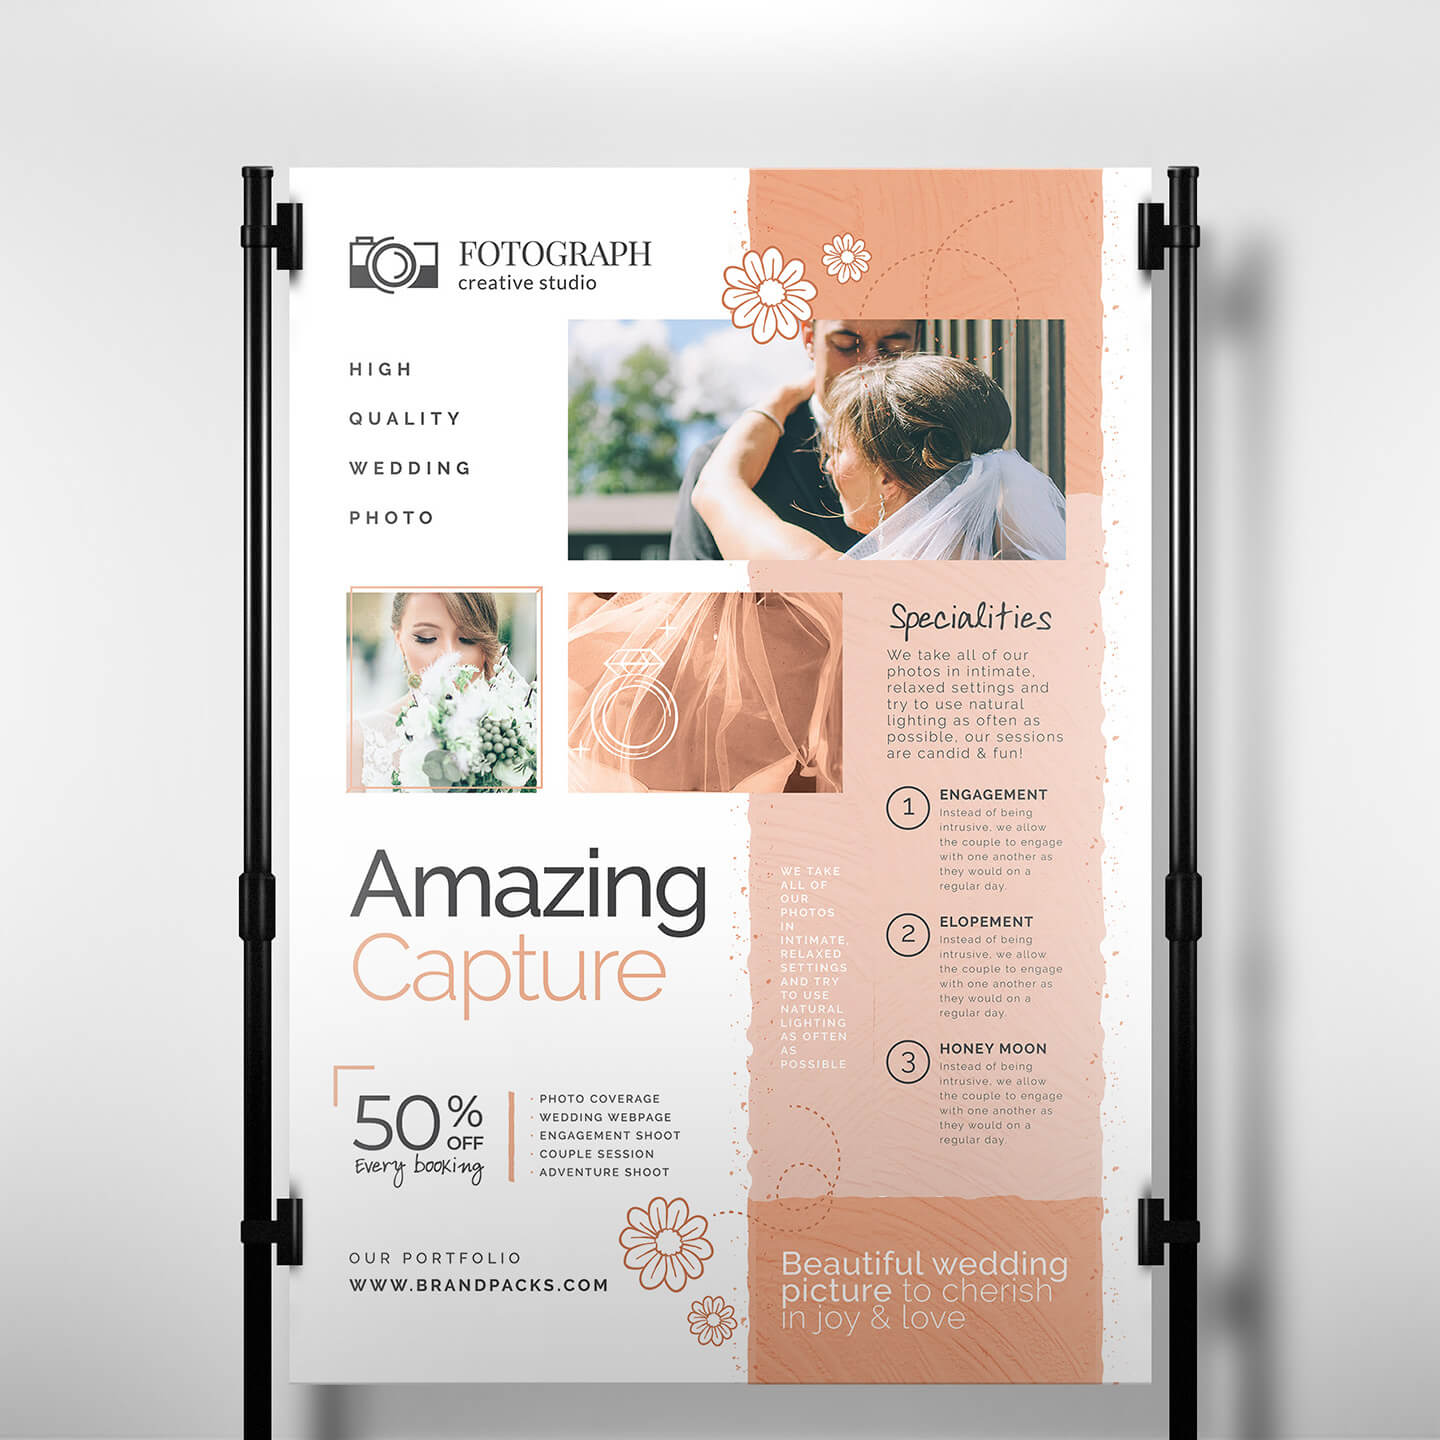 Photography Service Banner Template - Psd, Ai & Vector Throughout Photography Banner Template